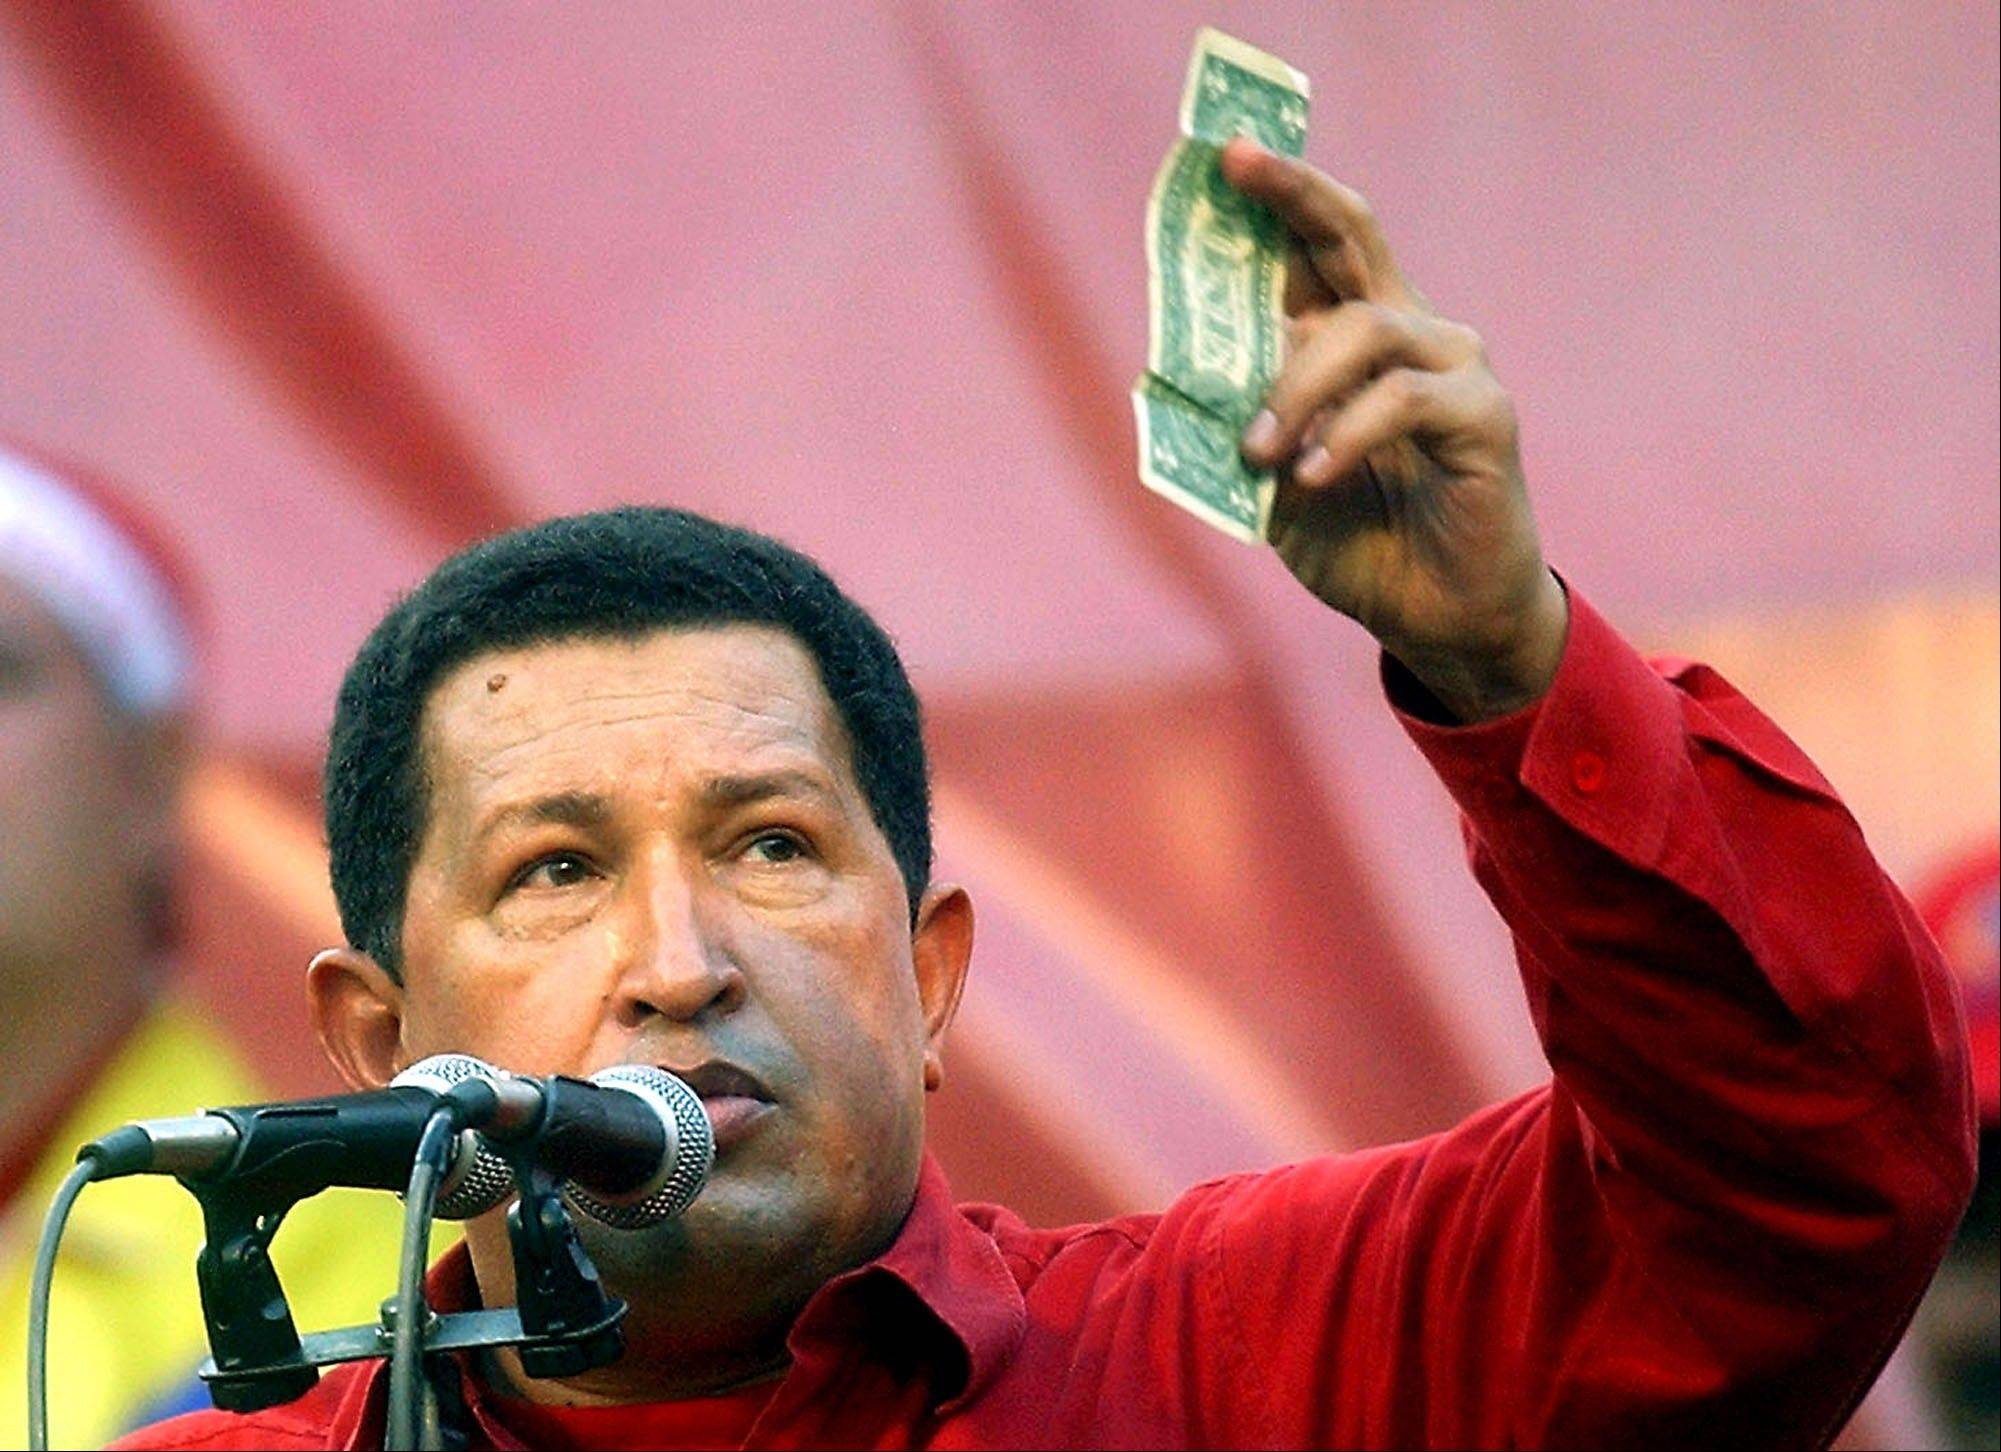 On Jan. 23, 2005, Venezuela's President Hugo Chavez helds up a U.S. dollar bill and challenged U.S. President George W. Bush to bet which of them would remain in power longer at a rally in Caracas. Chavez died on Tuesday at age 58 after a nearly two-year bout with cancer.